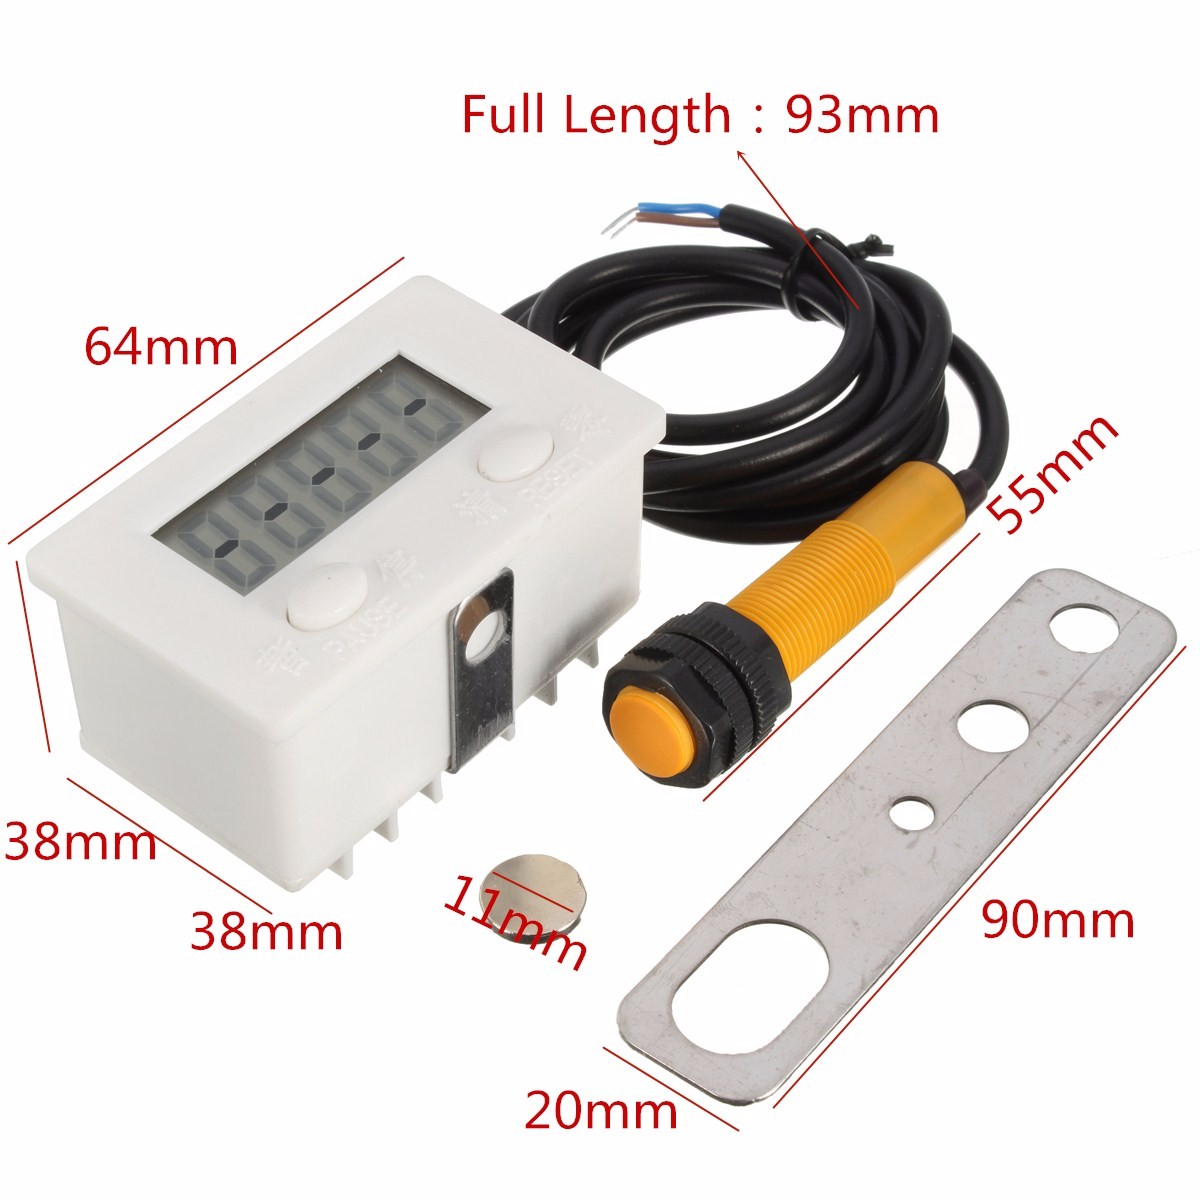 hight resolution of 5 digital electronic counter puncher magnetic inductive proximity switches sale banggood com sold out